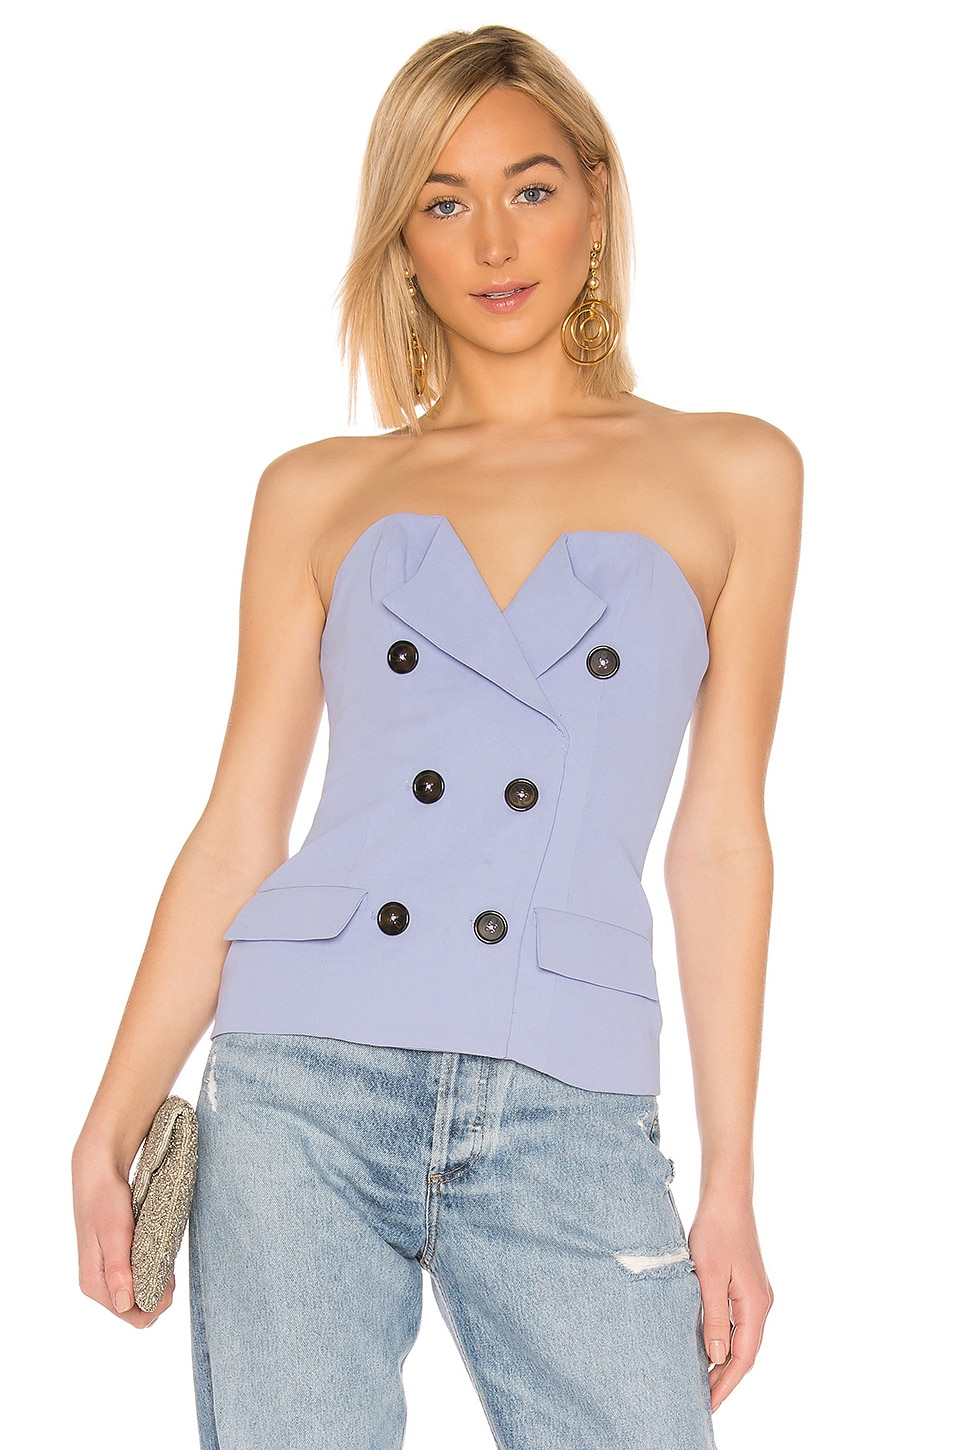 Lovers + Friends Beverly Top in Periwinkle